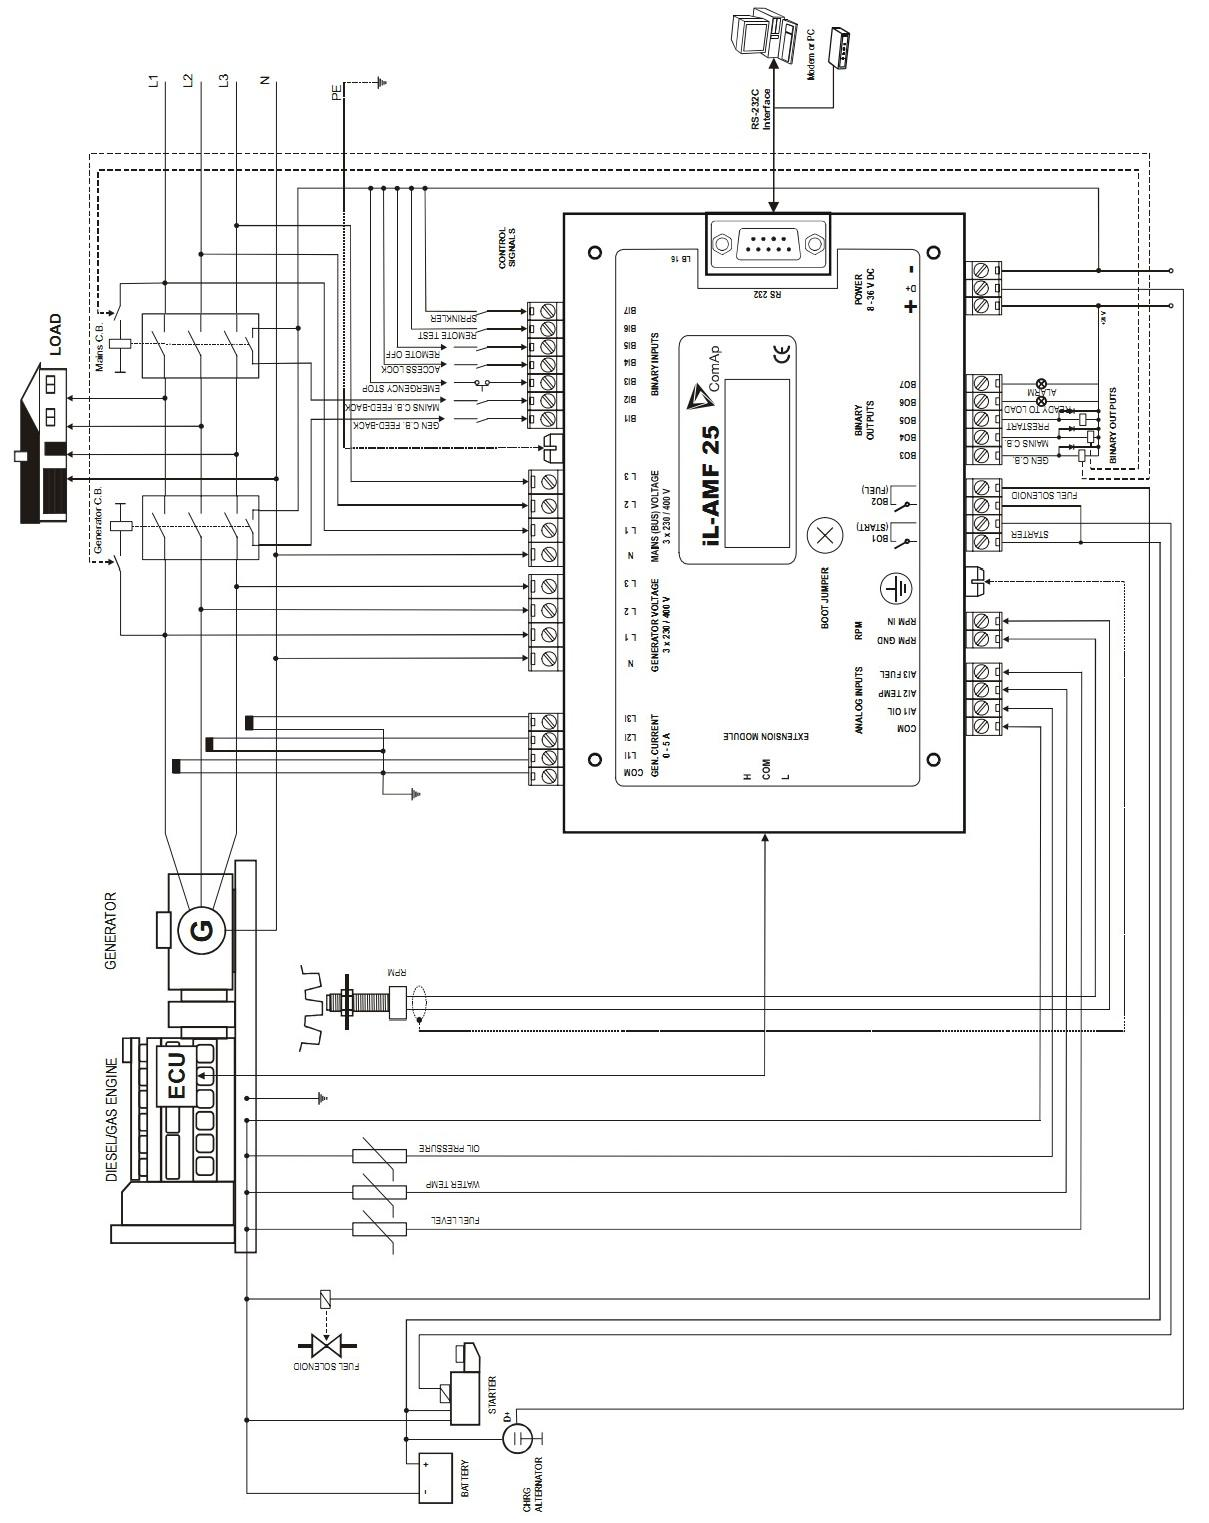 201210228323863 permanent electron co ,ltd,avr,sx440,sx460,r448,r230,stamford avr stamford avr sx460 wiring diagram at virtualis.co